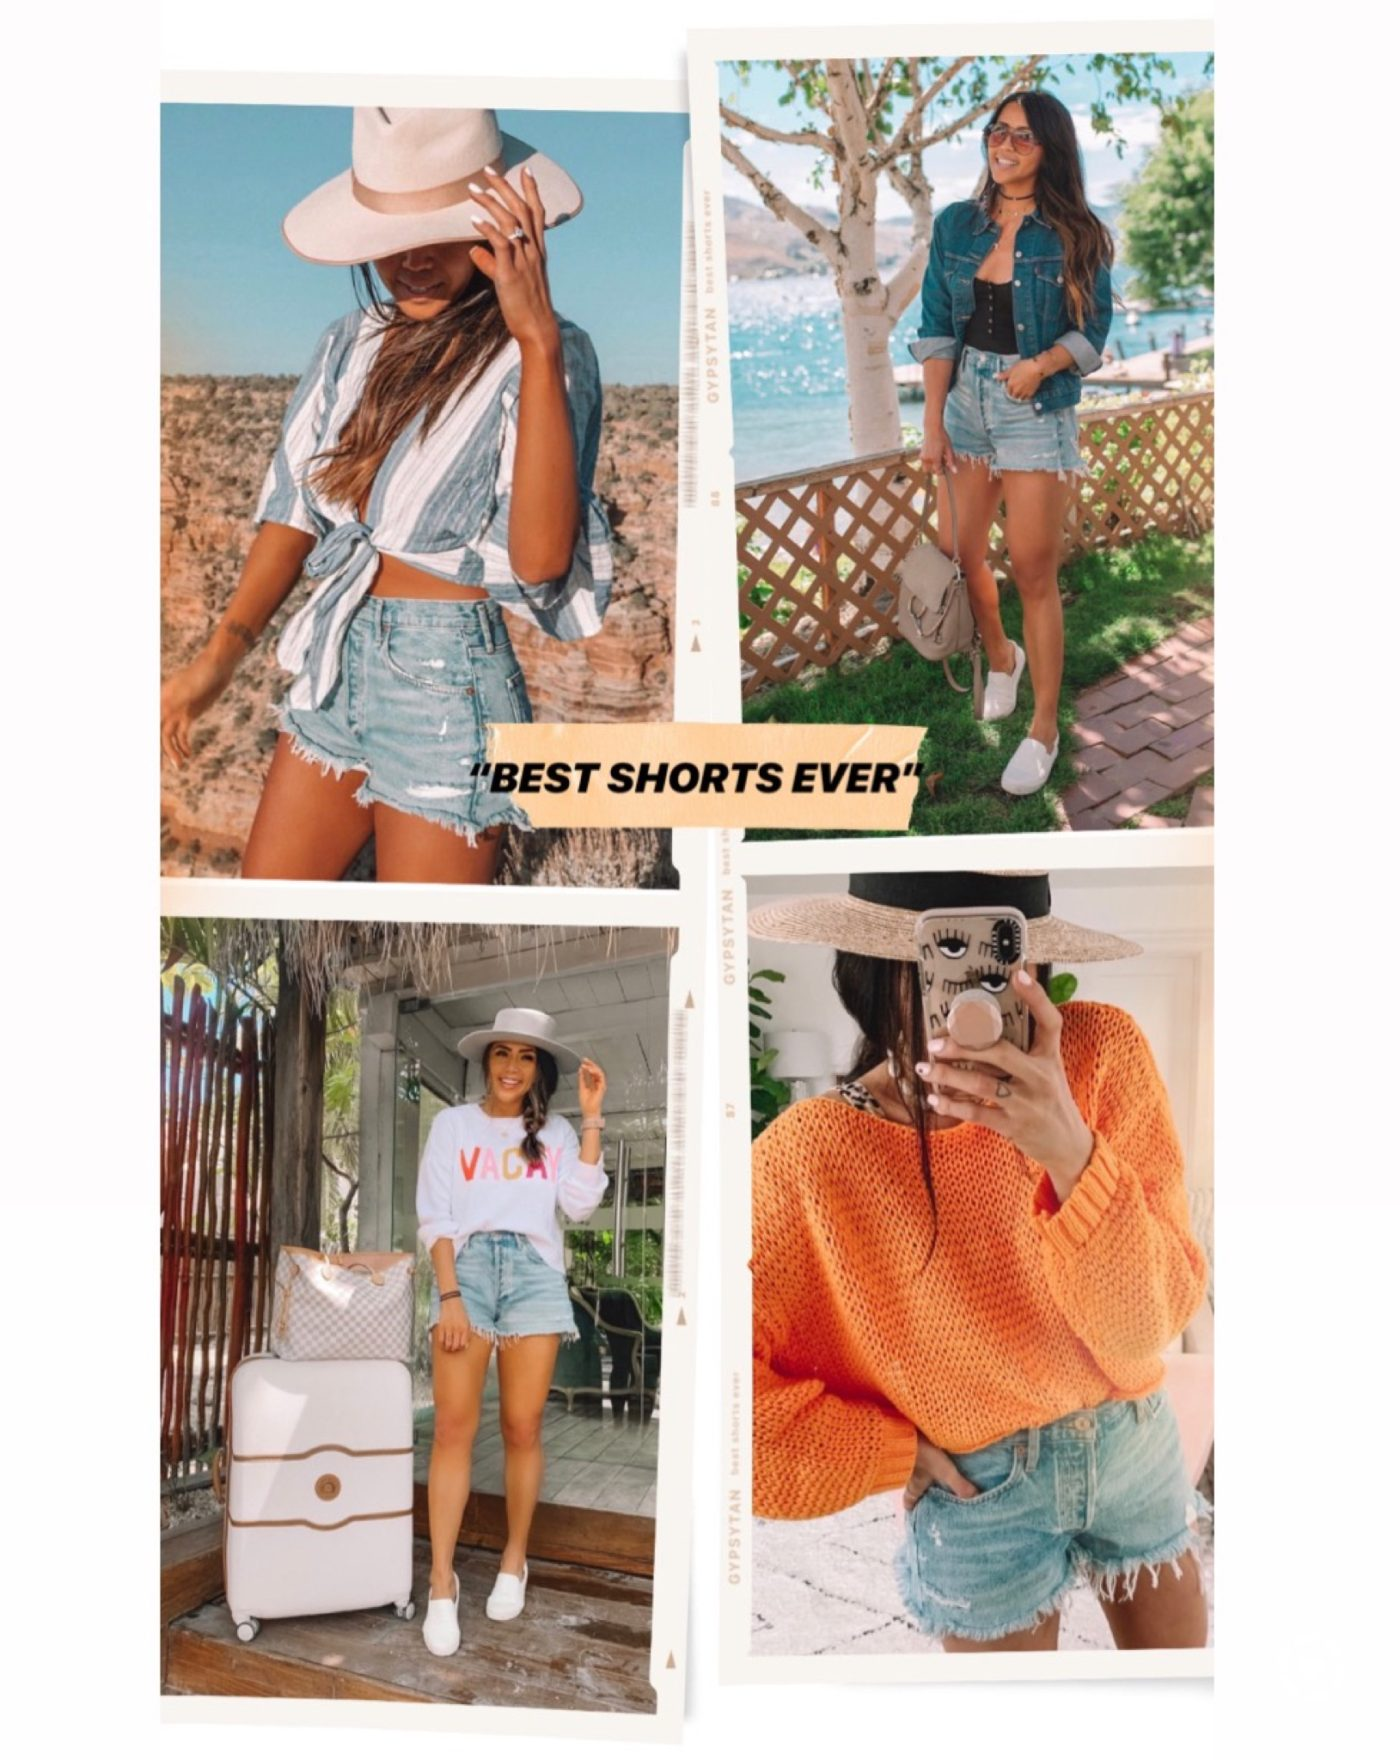 The Short & Long of It: 4 Best Denim Shorts I Own | Gypsy Tan